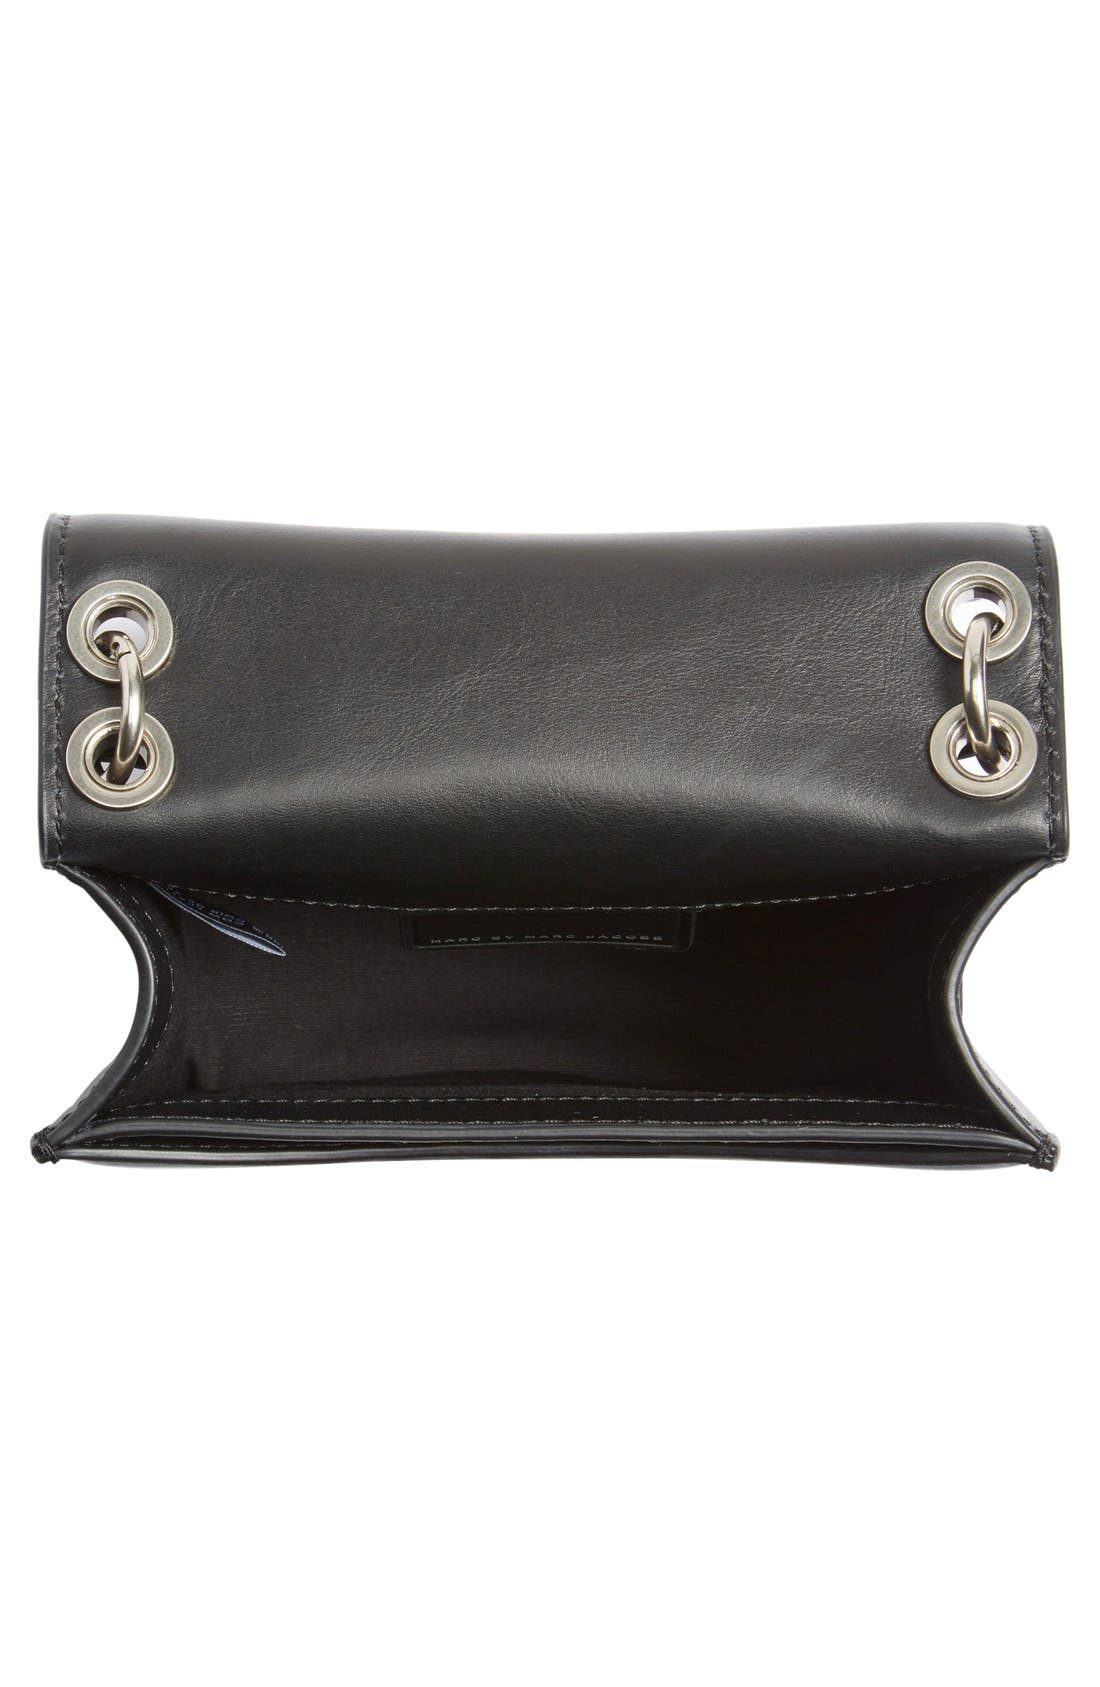 MARC JACOBS,                             MARC BY MARC JACOBS 'The Box' Crossbody Bag,                             Alternate thumbnail 4, color,                             001